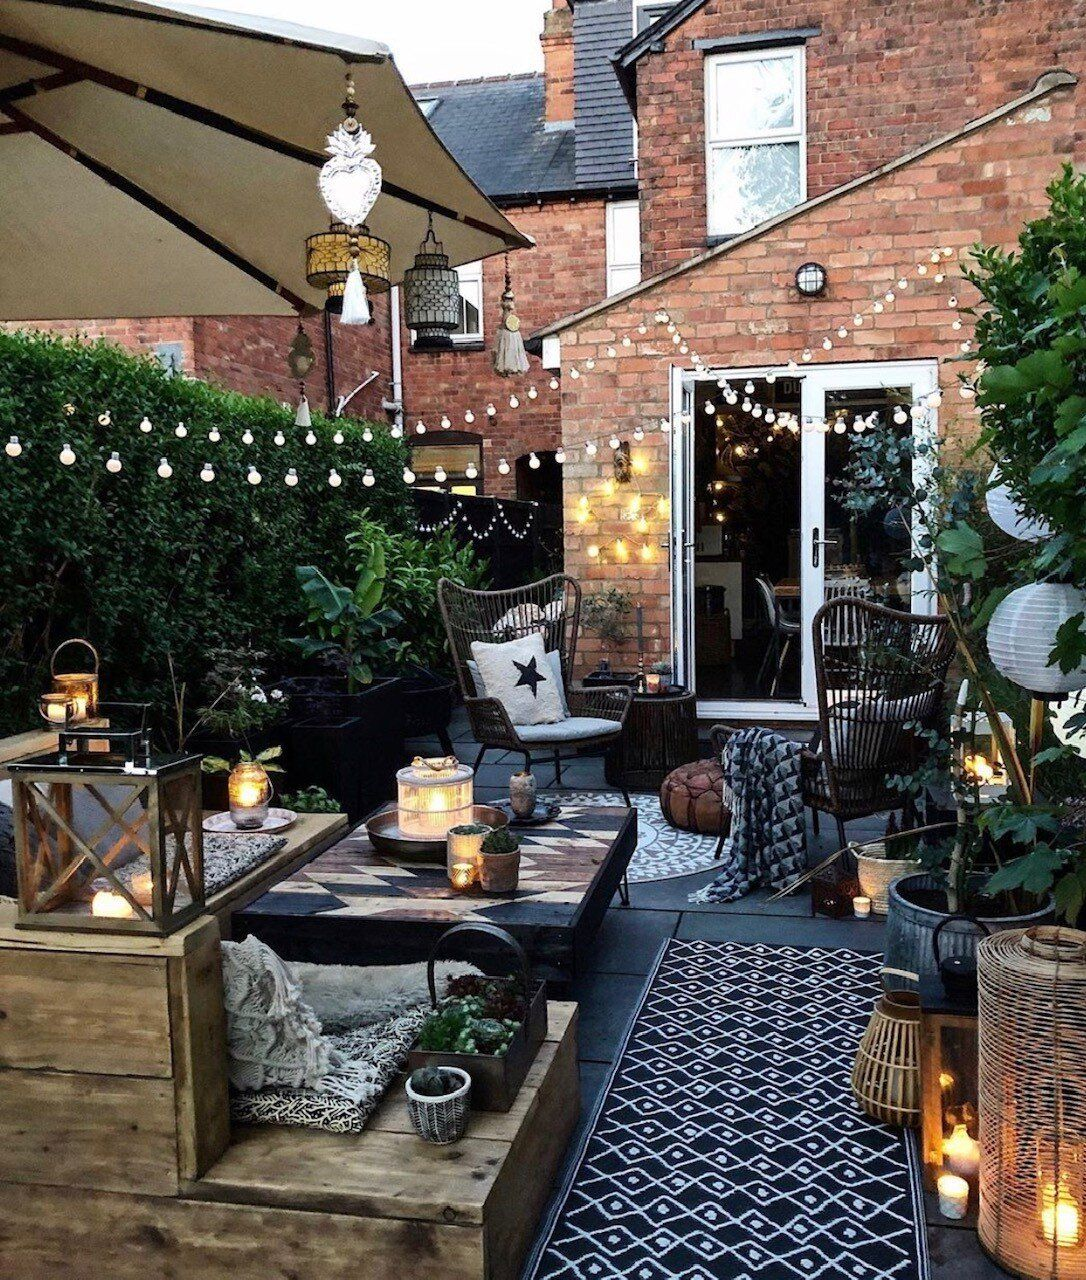 The most amazing garden transformation by @theresagromski where the patio continues the living space